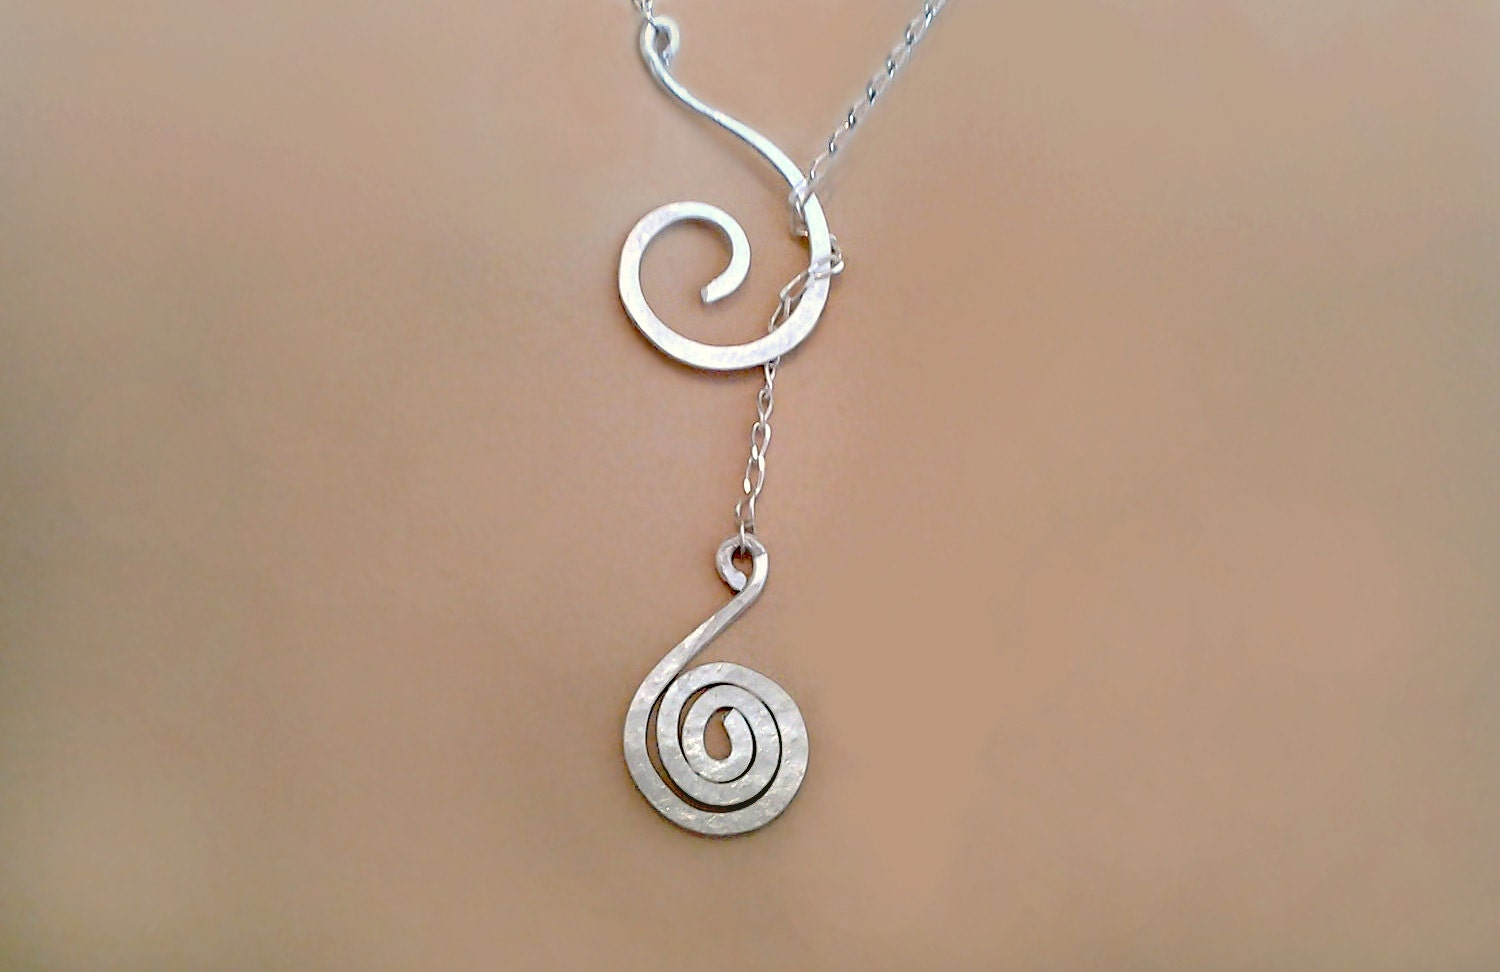 spiral necklace lariat necklace with special meaning silver. Black Bedroom Furniture Sets. Home Design Ideas